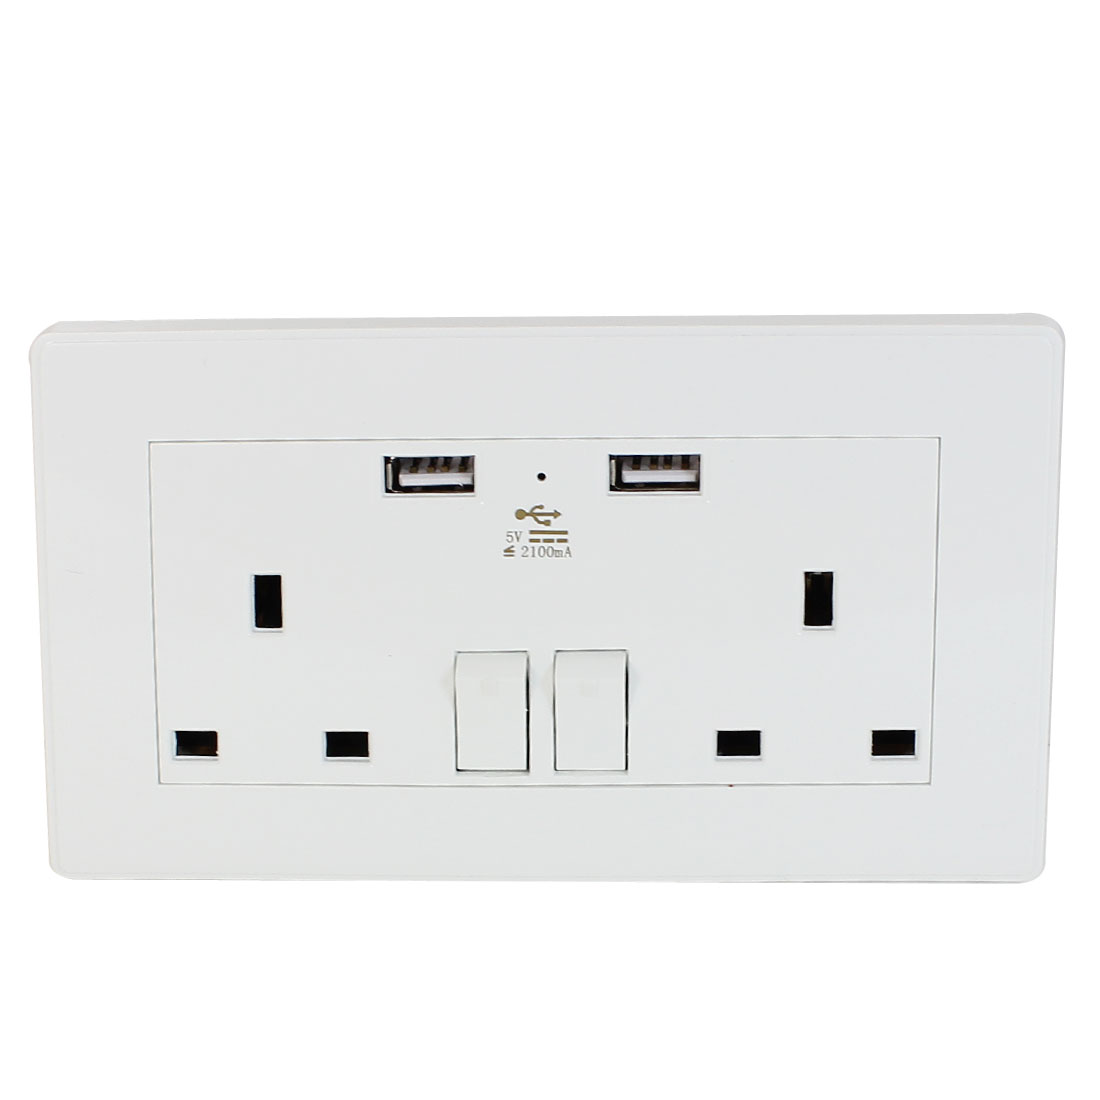 Dual AC 110V-250V UK Socket 2 USB Port Charging DC 5V 2100mA Mains Power Switch Wall Outlet